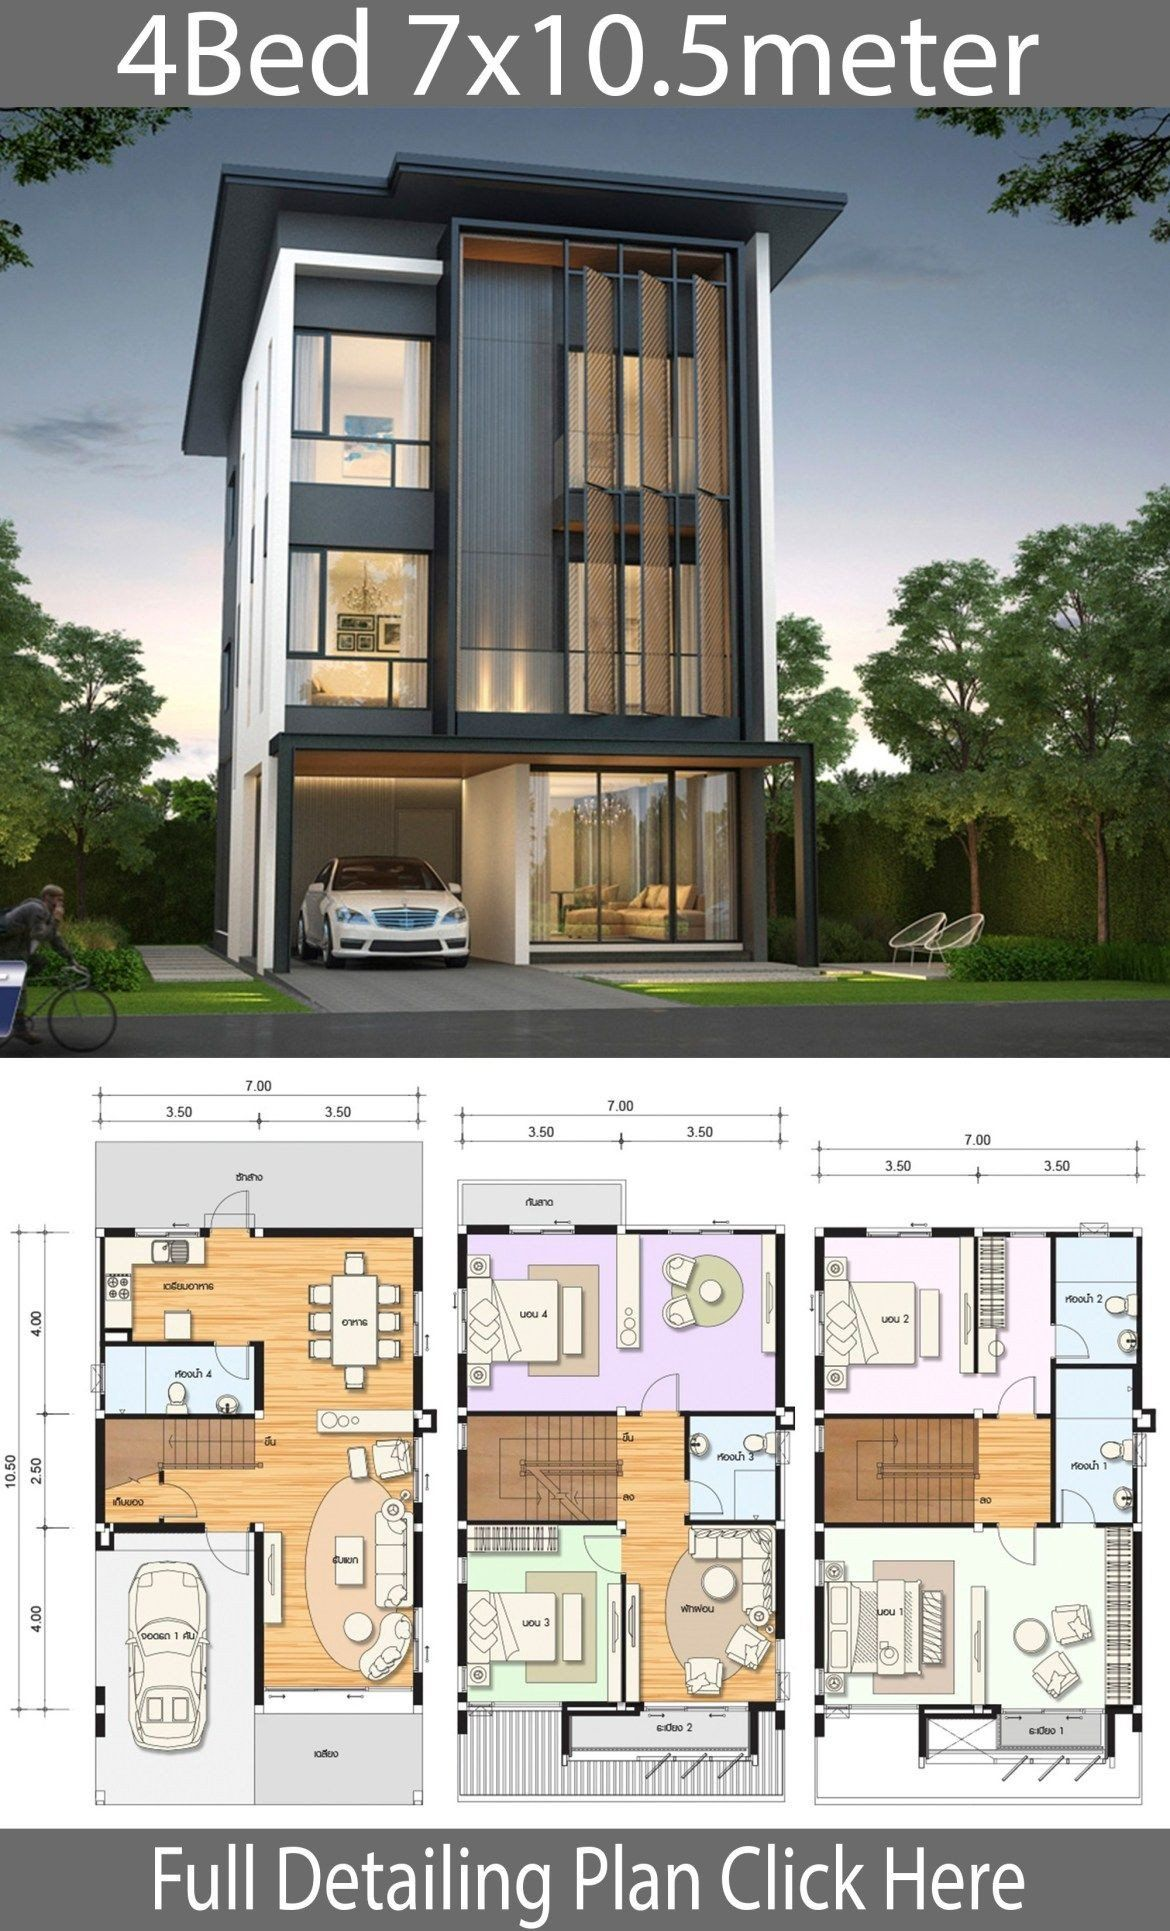 Modern House Designs And Plans House Design Plan 7x10 5m With 4 Bedrooms Narrow House Plans Architectural House Plans Minimalist House Design